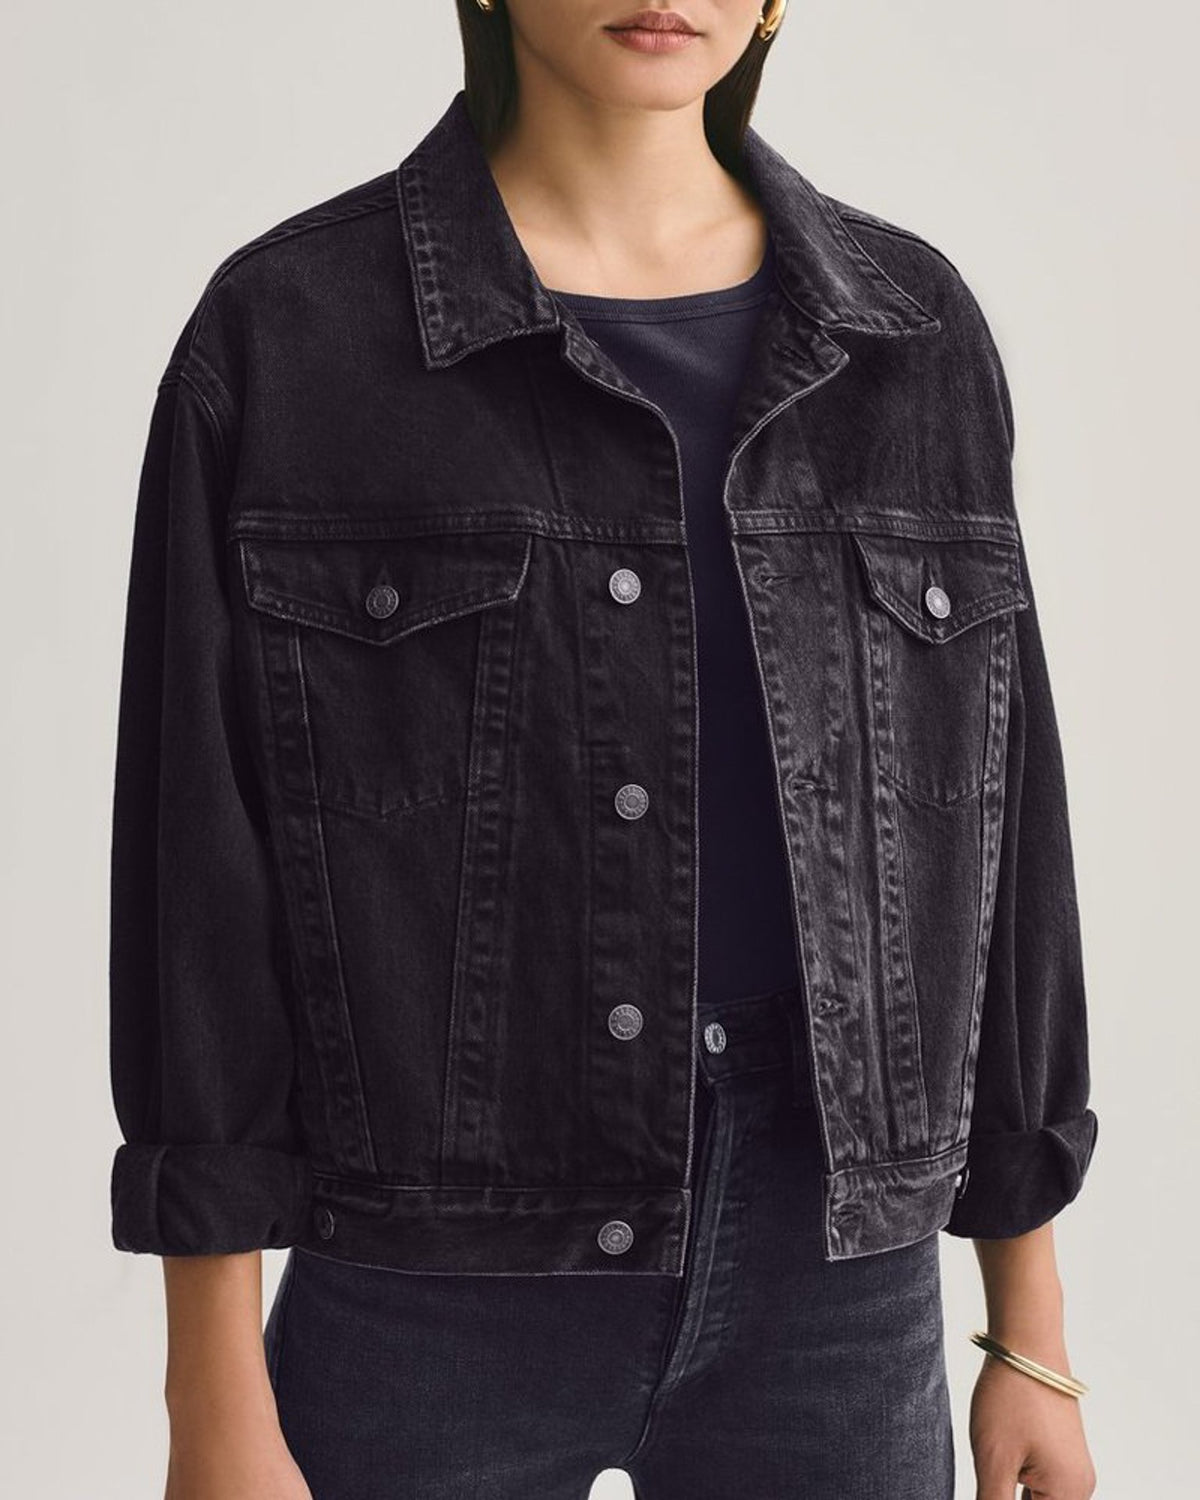 AGOLDE Denim Charli Oversized Jacket in Double Exposure